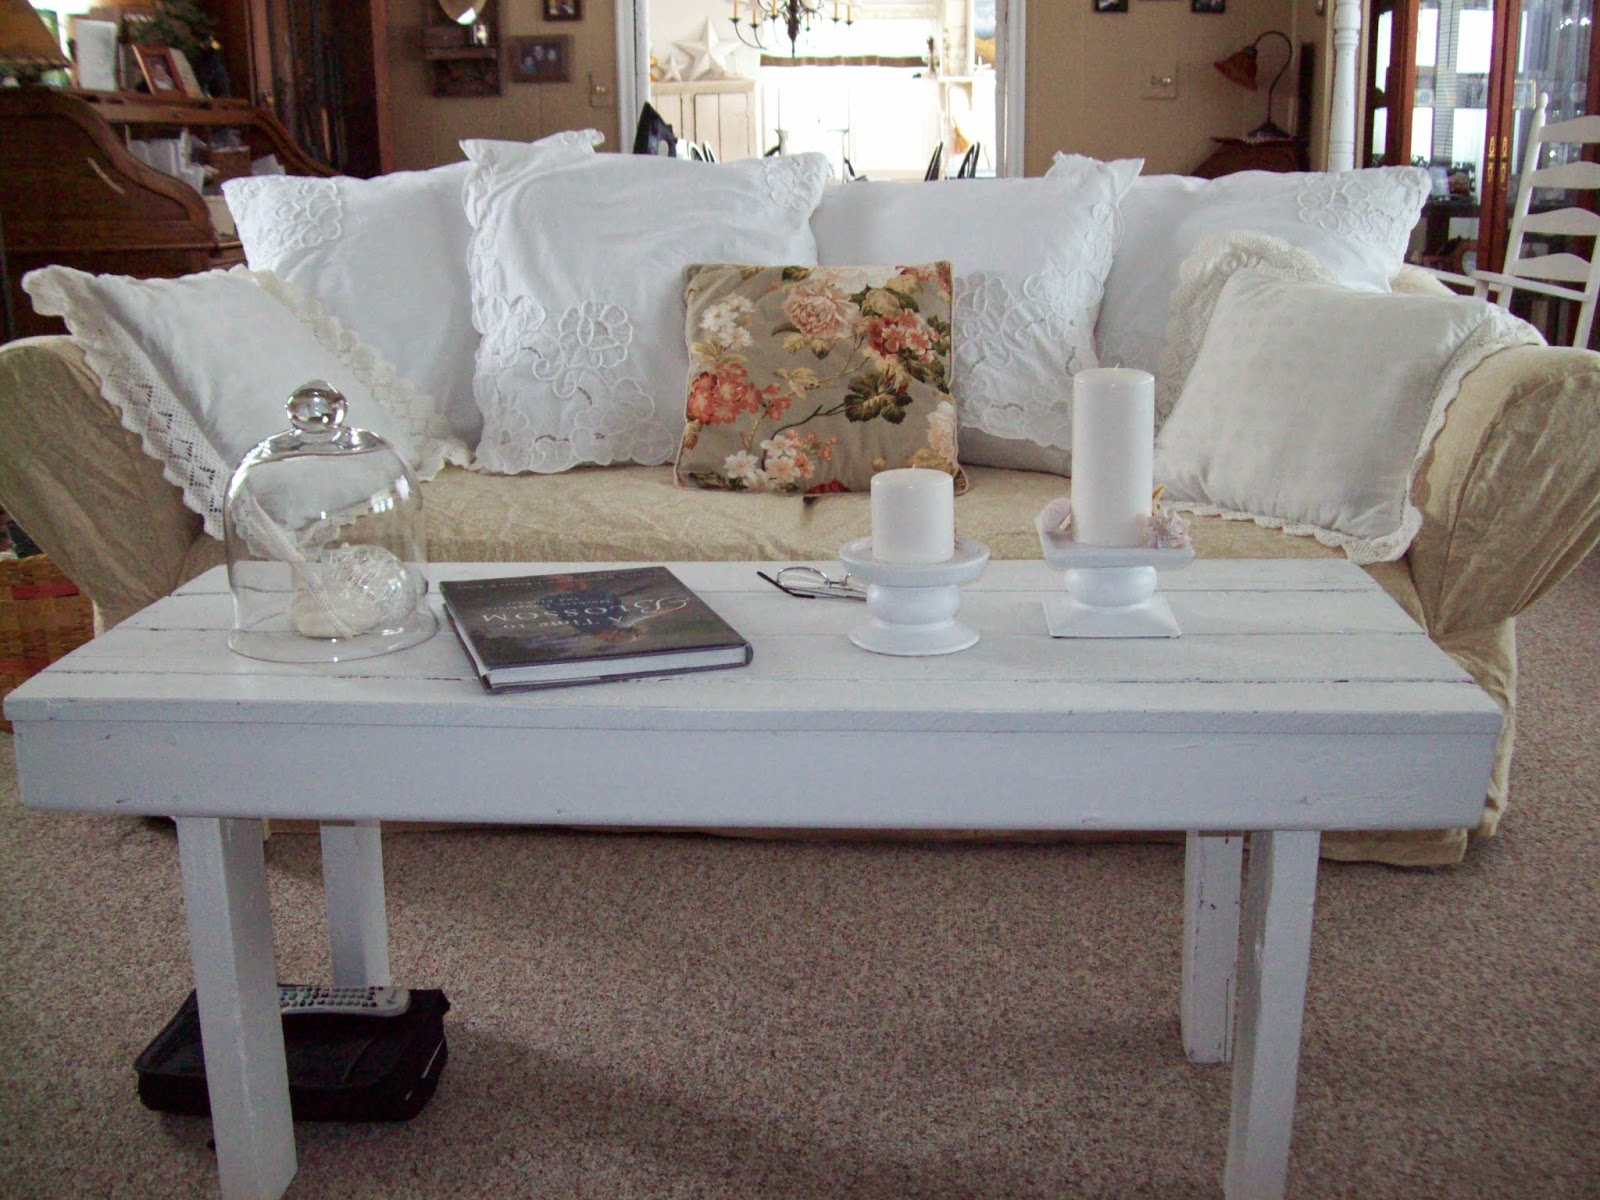 Sofa Table Runners Latest Designs Lakehouse A Fresh Start